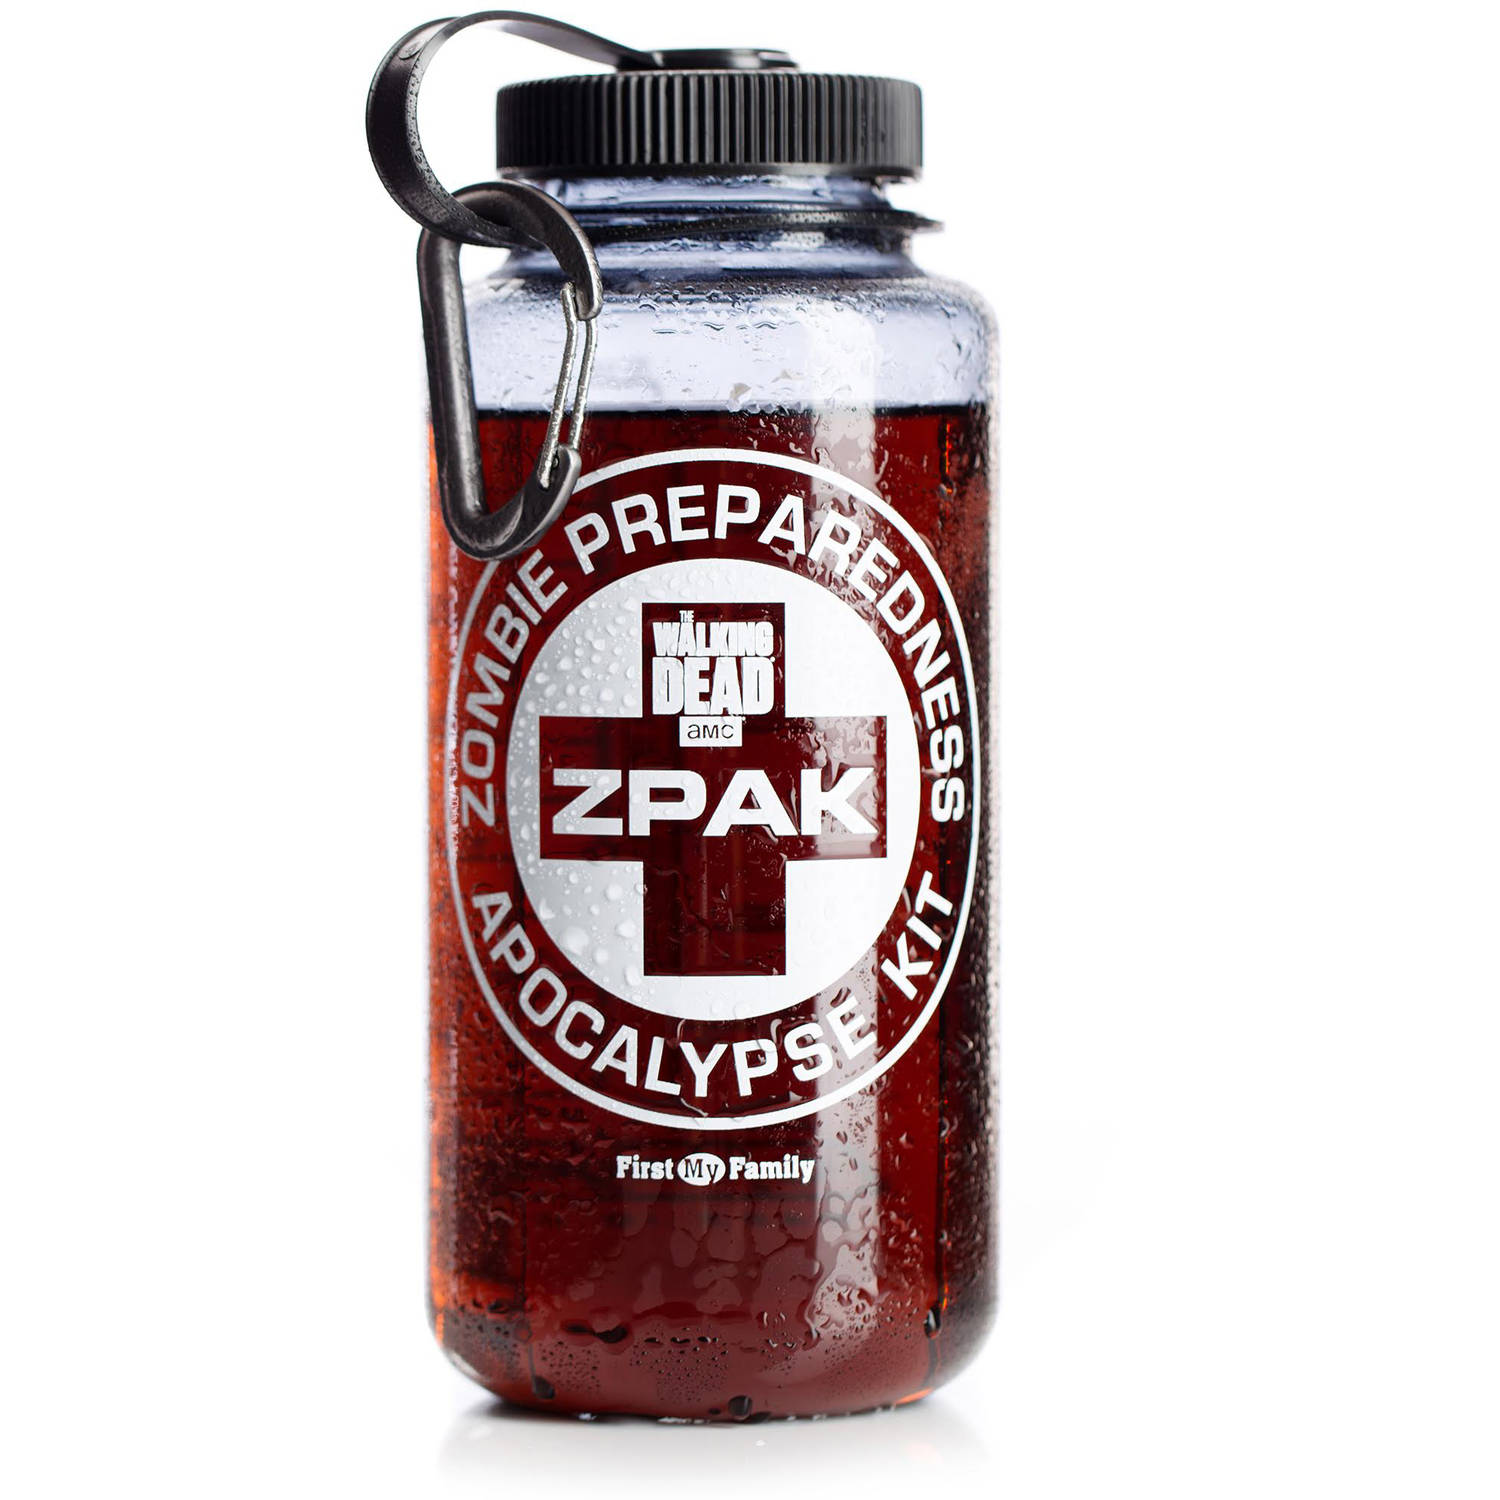 AMC The Walking Dead Zombie Preparedness Apocalypse Kit ZPAK